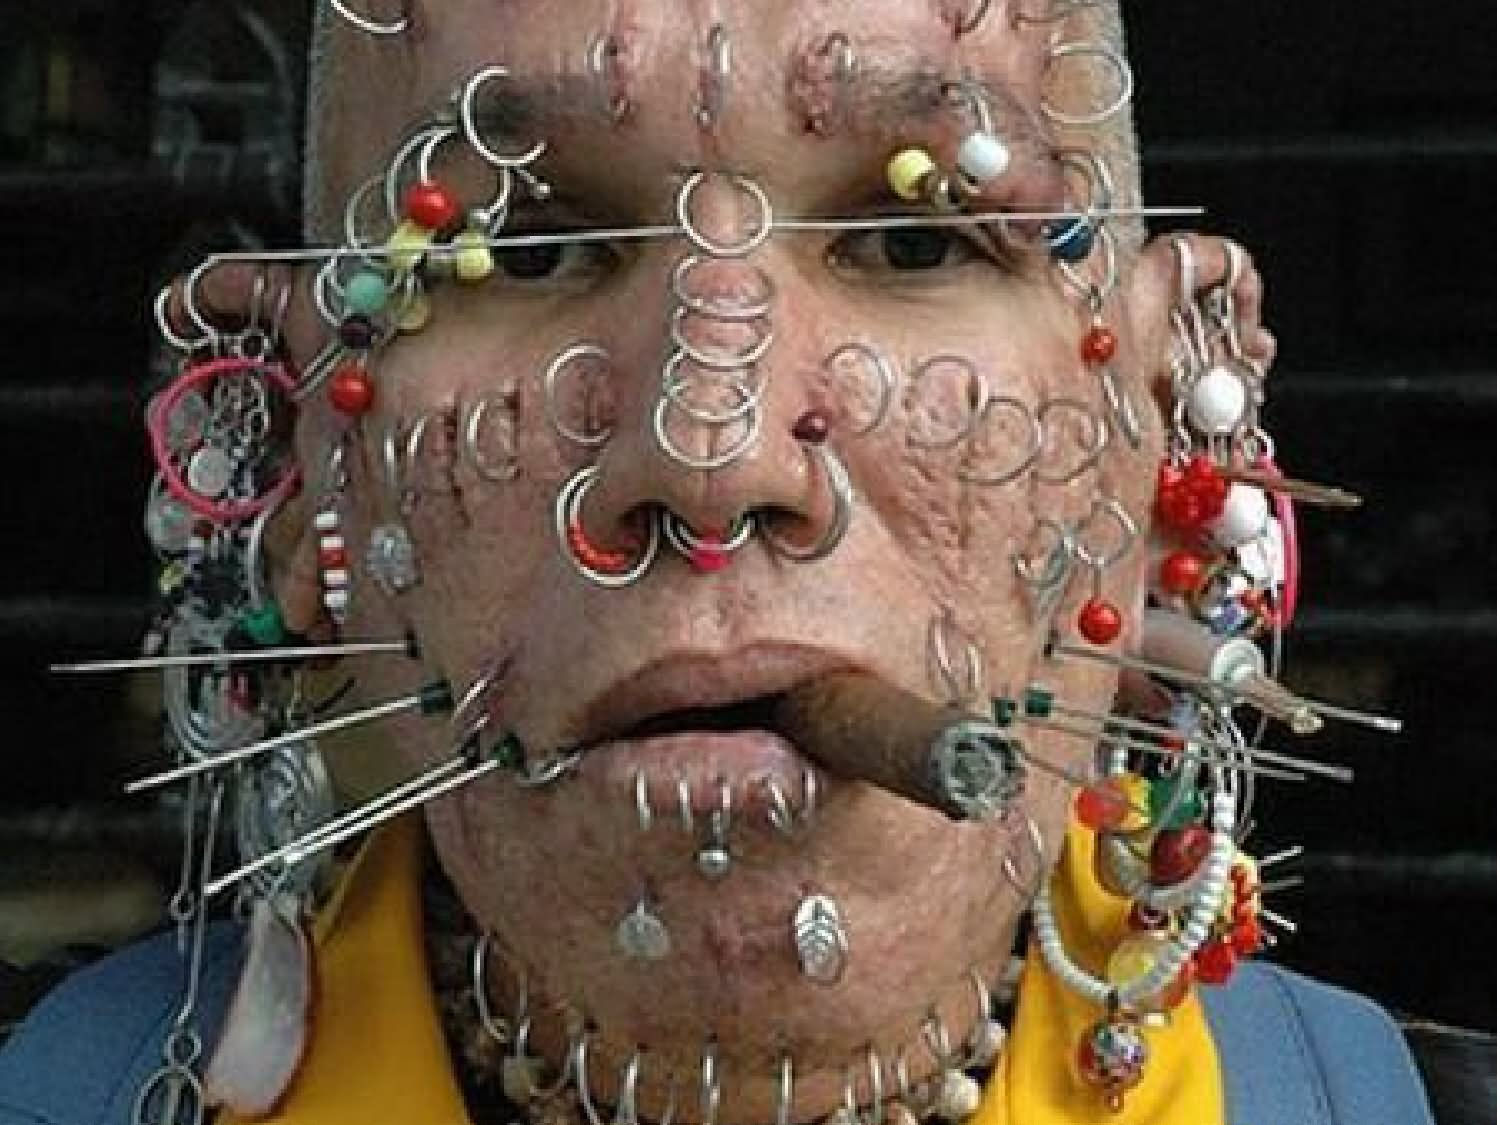 14+ Extreme Body Piercings Ideas